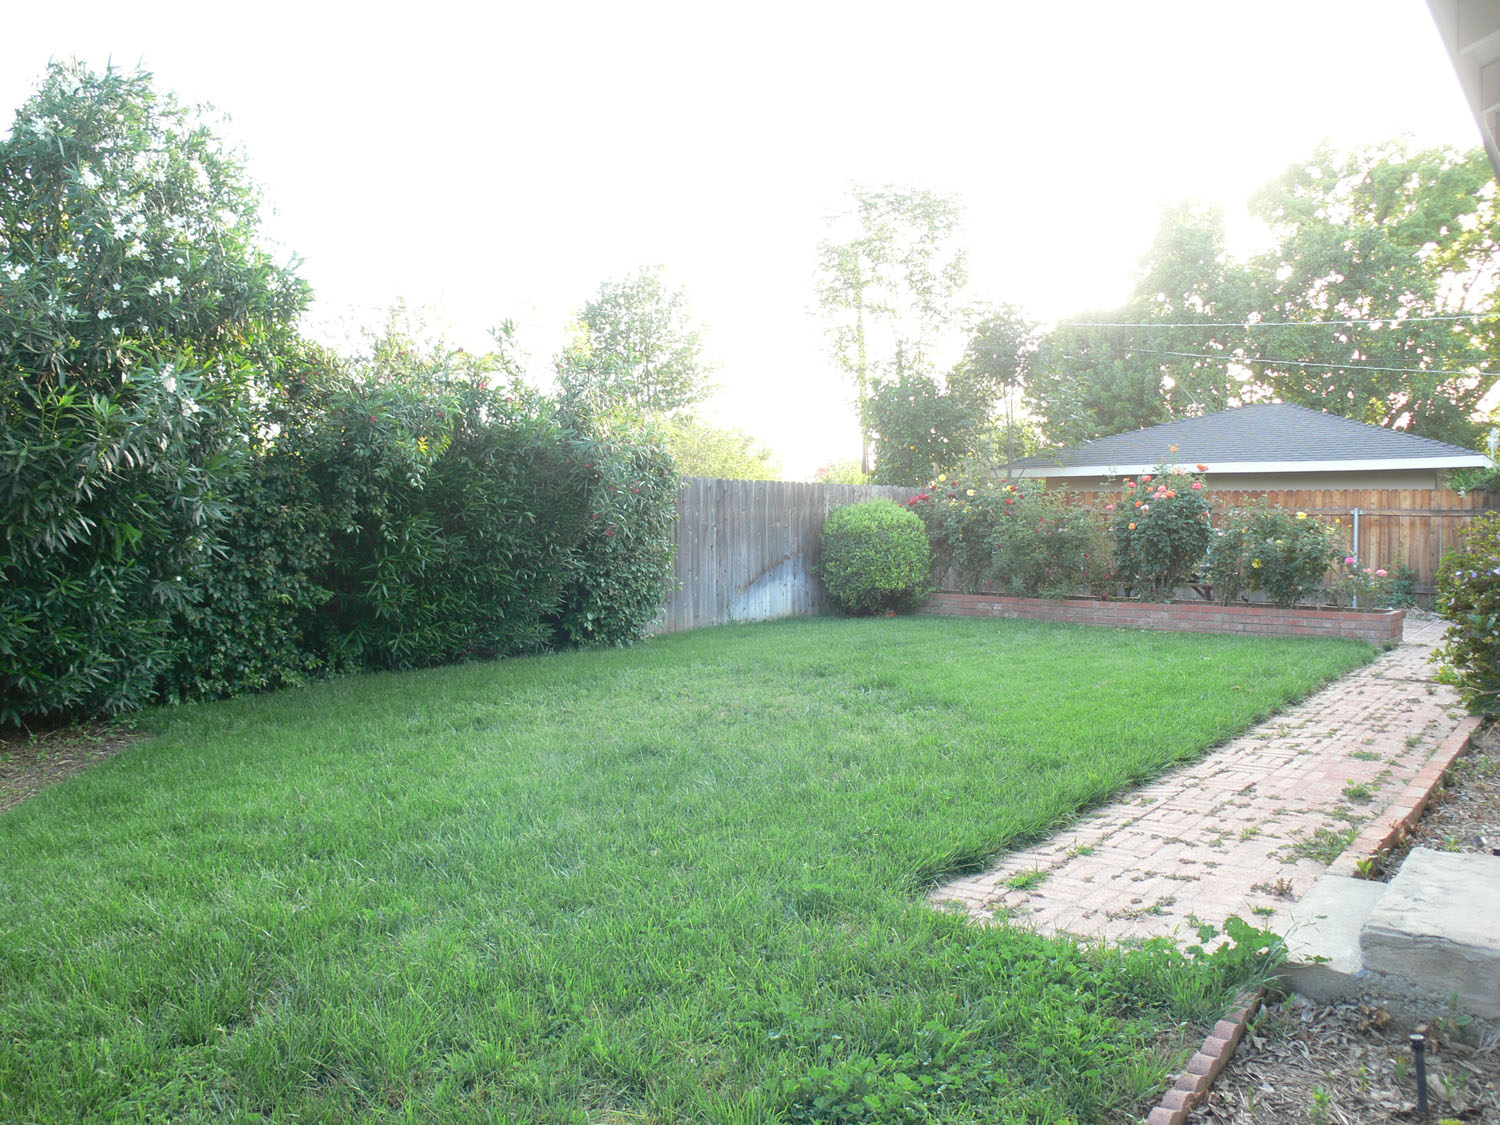 One of the largest lots on the street (11,325 sq ft) -- over a quarter acre! There is a whole separate yard behind fence to left. See next photo.